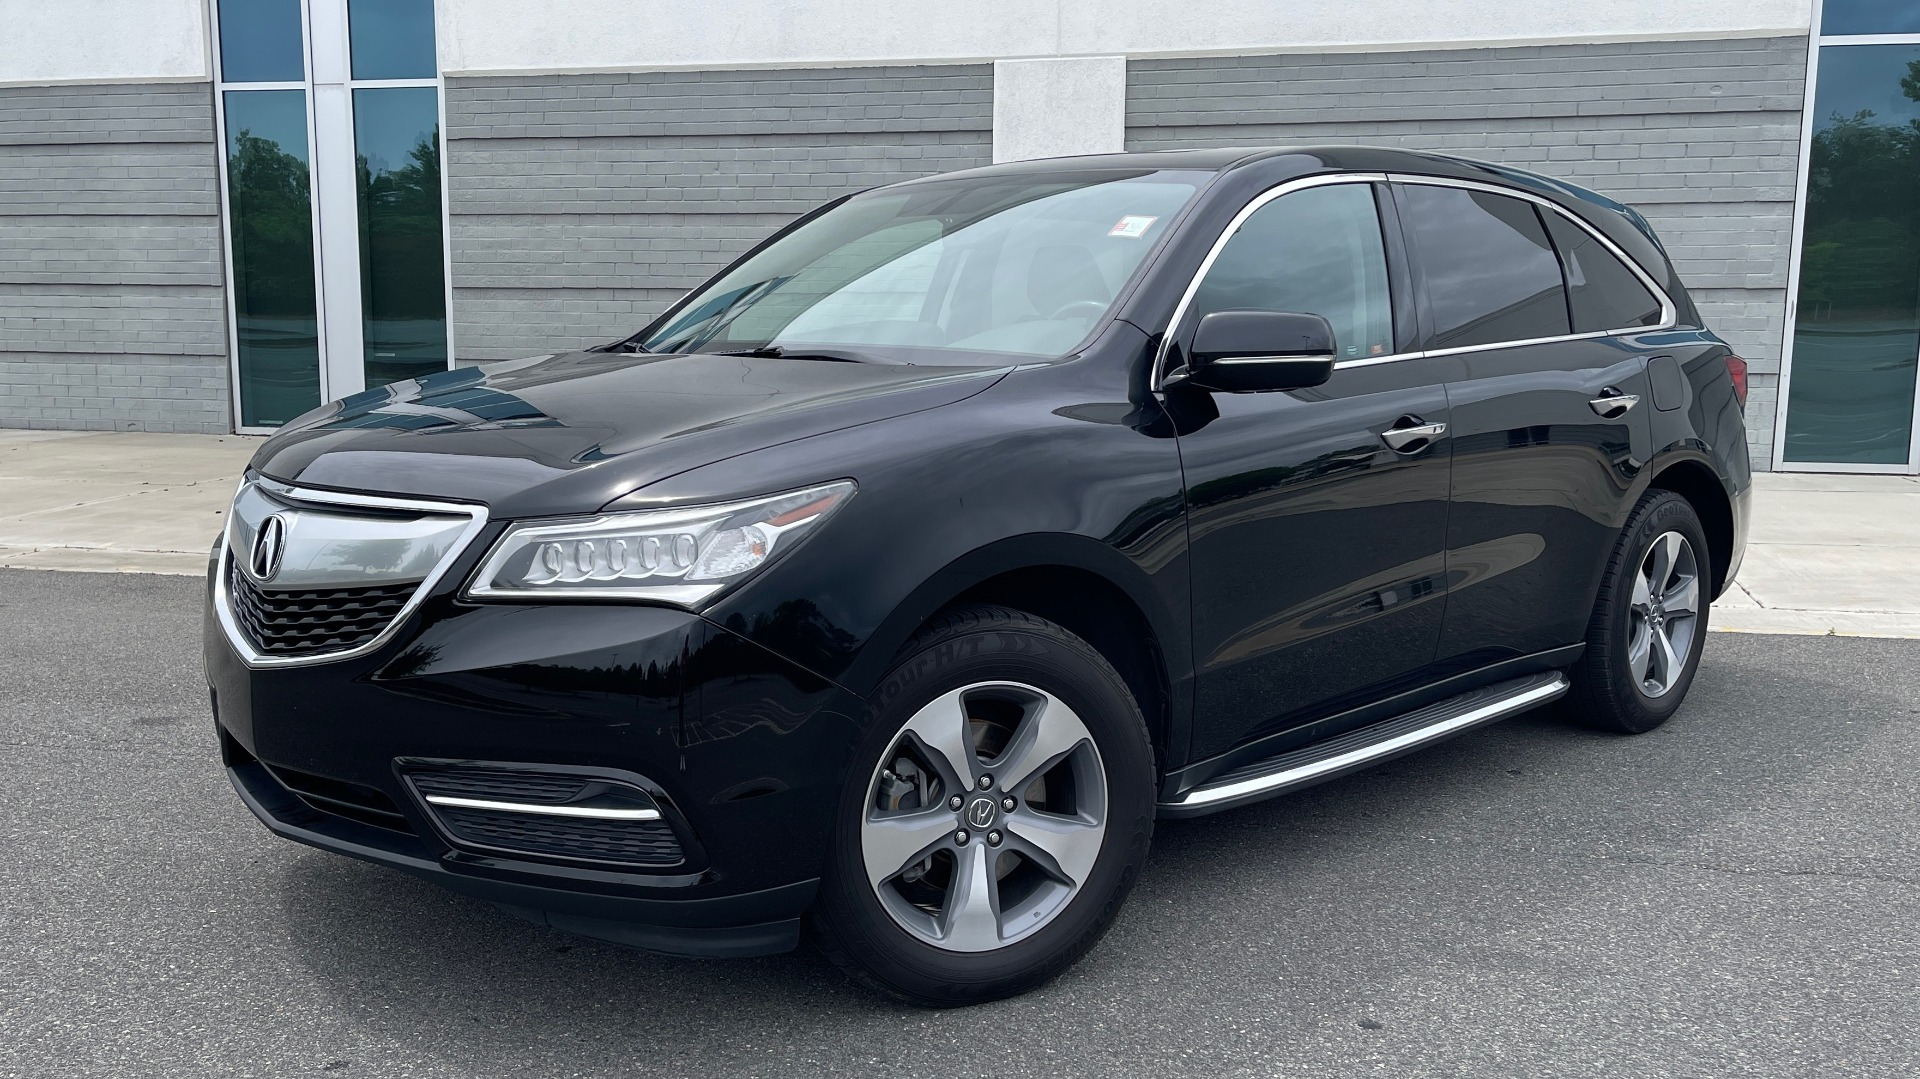 Used 2016 Acura MDX 3.5L V6 / AUTO / LEATHER / NAV / SUNROOF / 3-ROW / REARVIEW for sale $21,900 at Formula Imports in Charlotte NC 28227 1